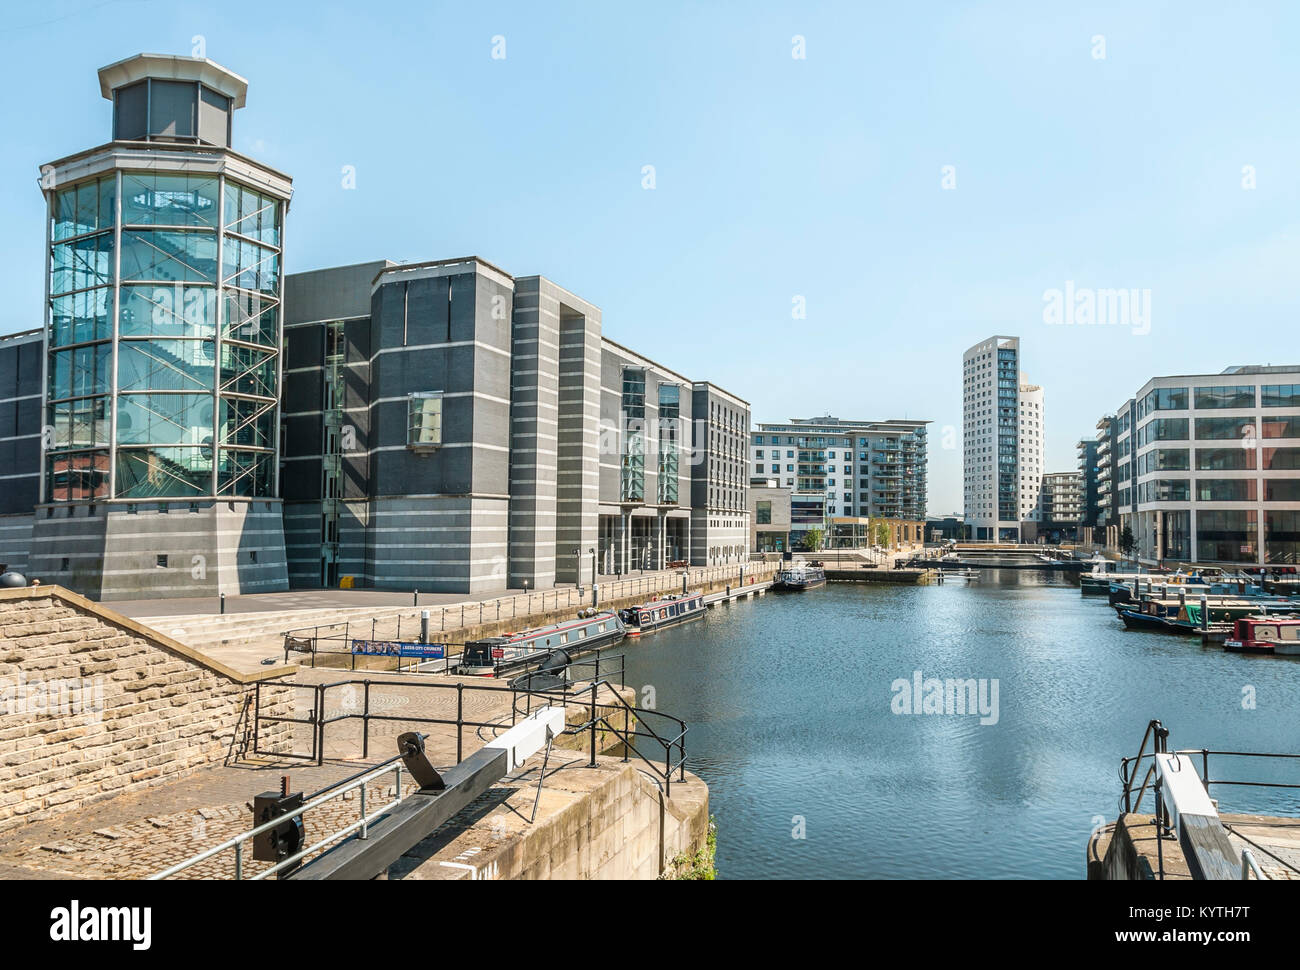 Clarence Dock in Leeds is a shopping and leisure destination in central Leeds, West Yorkshire, England. It also - Stock Image